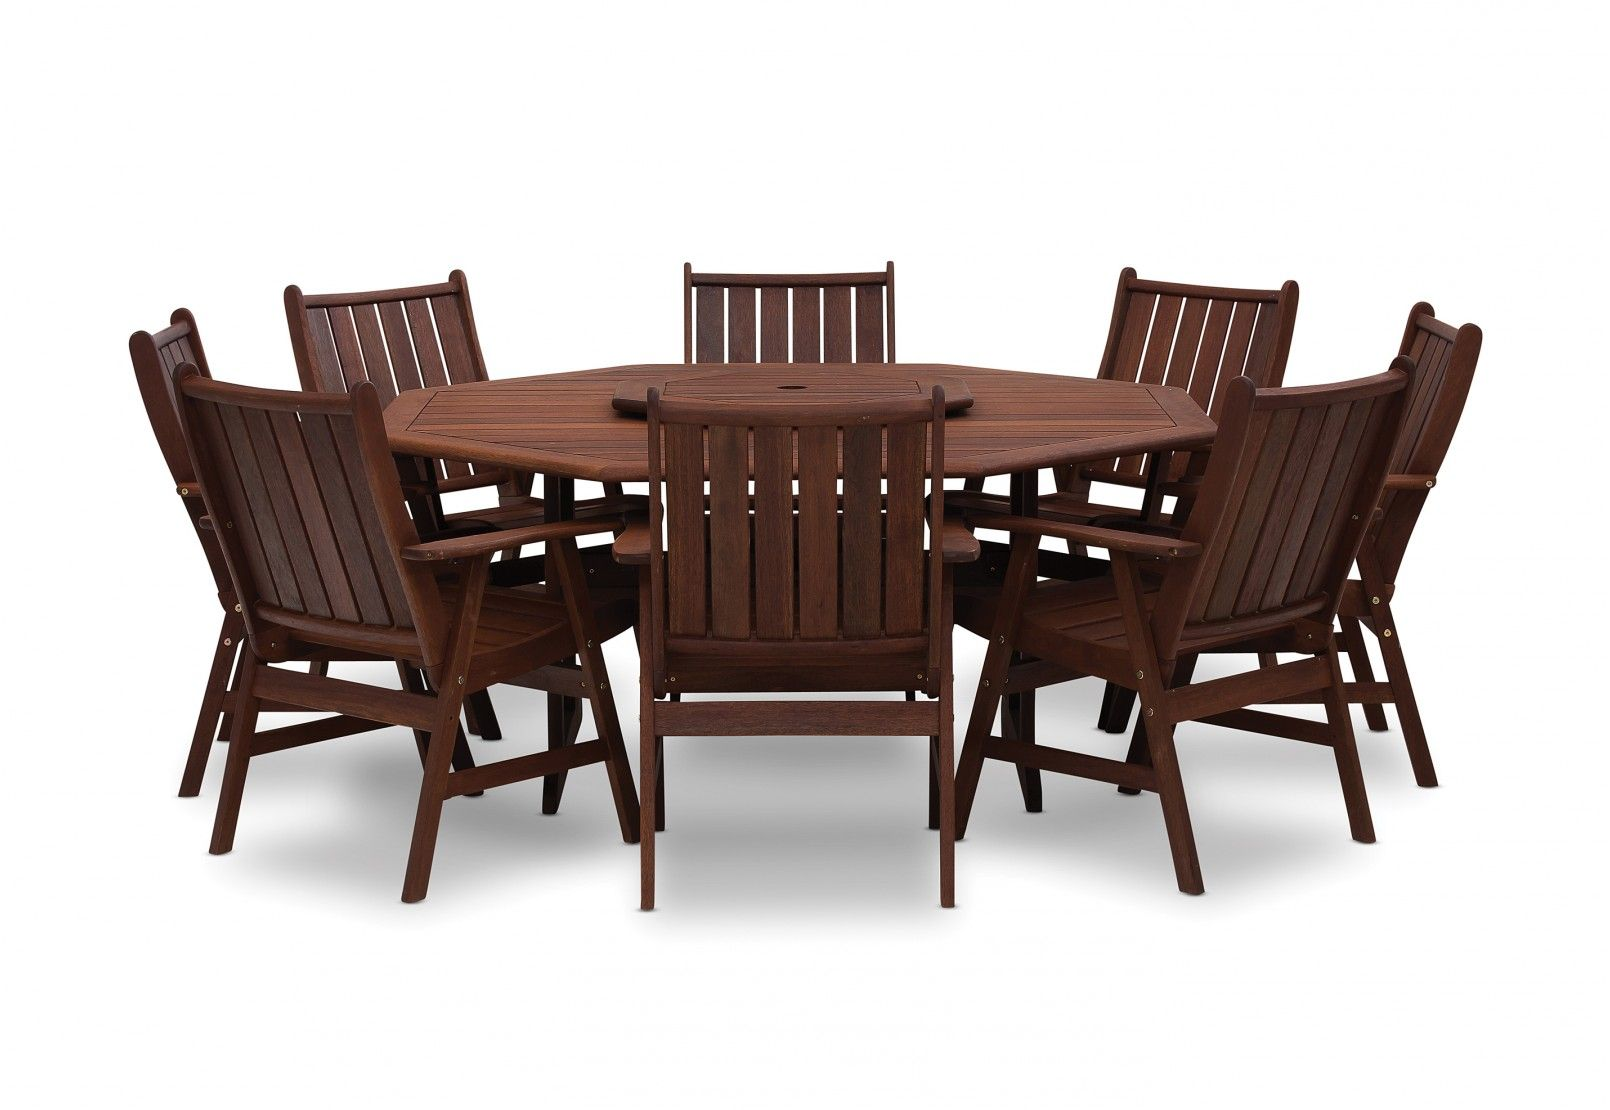 Frontier 9 Piece Outdoor Octagonal Dining Suite Square Patio Table Outdoor Dining Furniture Dining Table Accessories